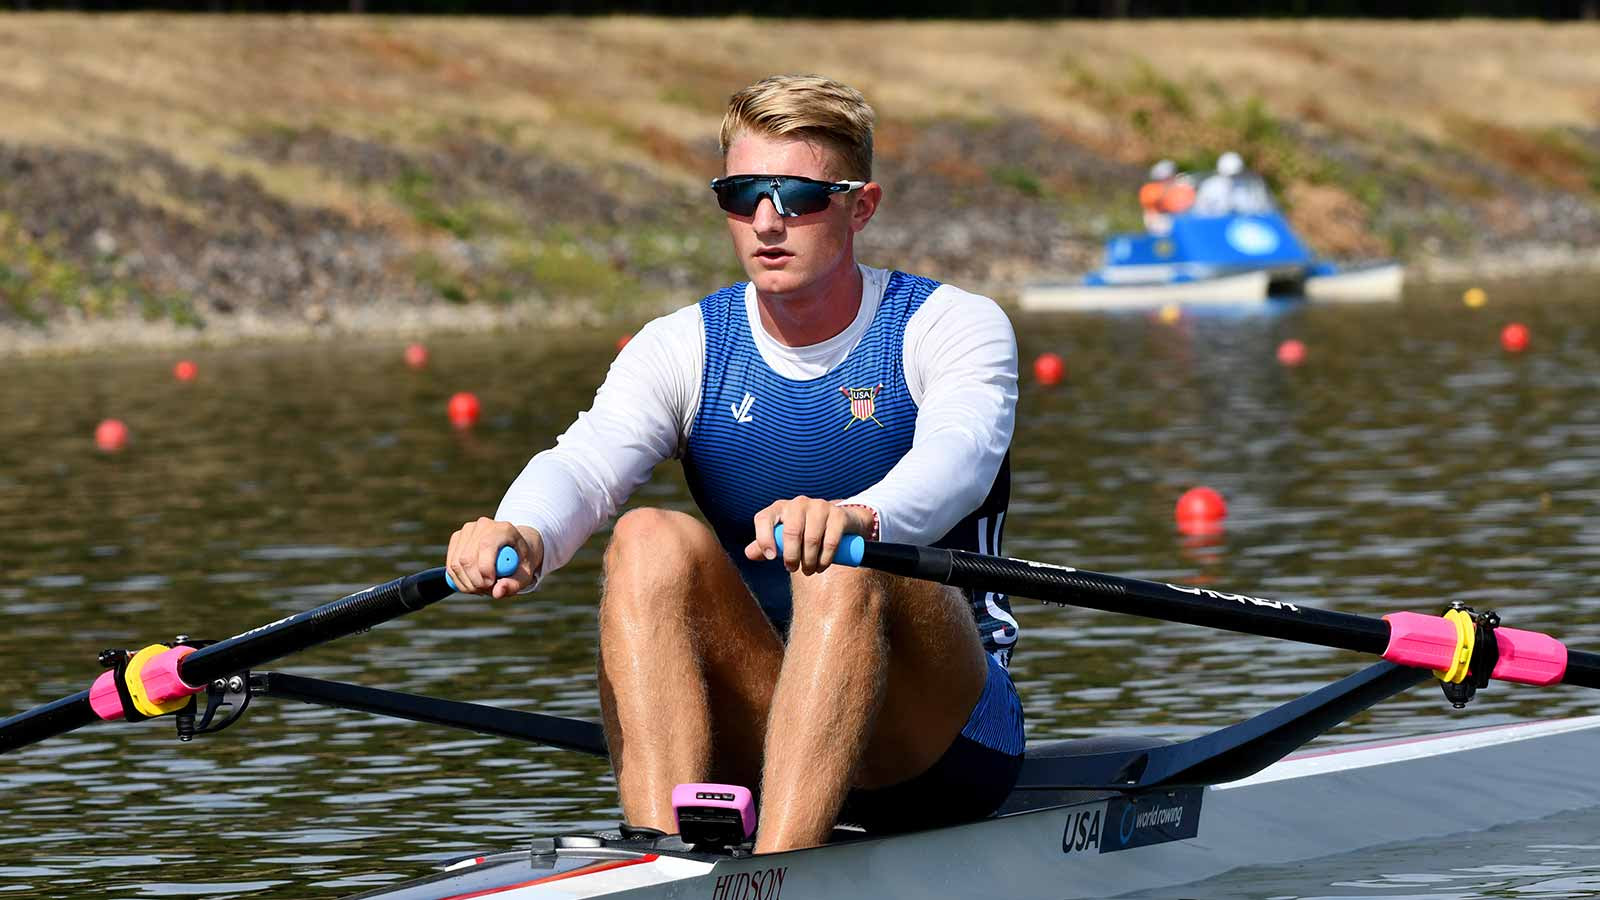 Clark Dean on the start on the opening day of the World Rowing Junior Championships